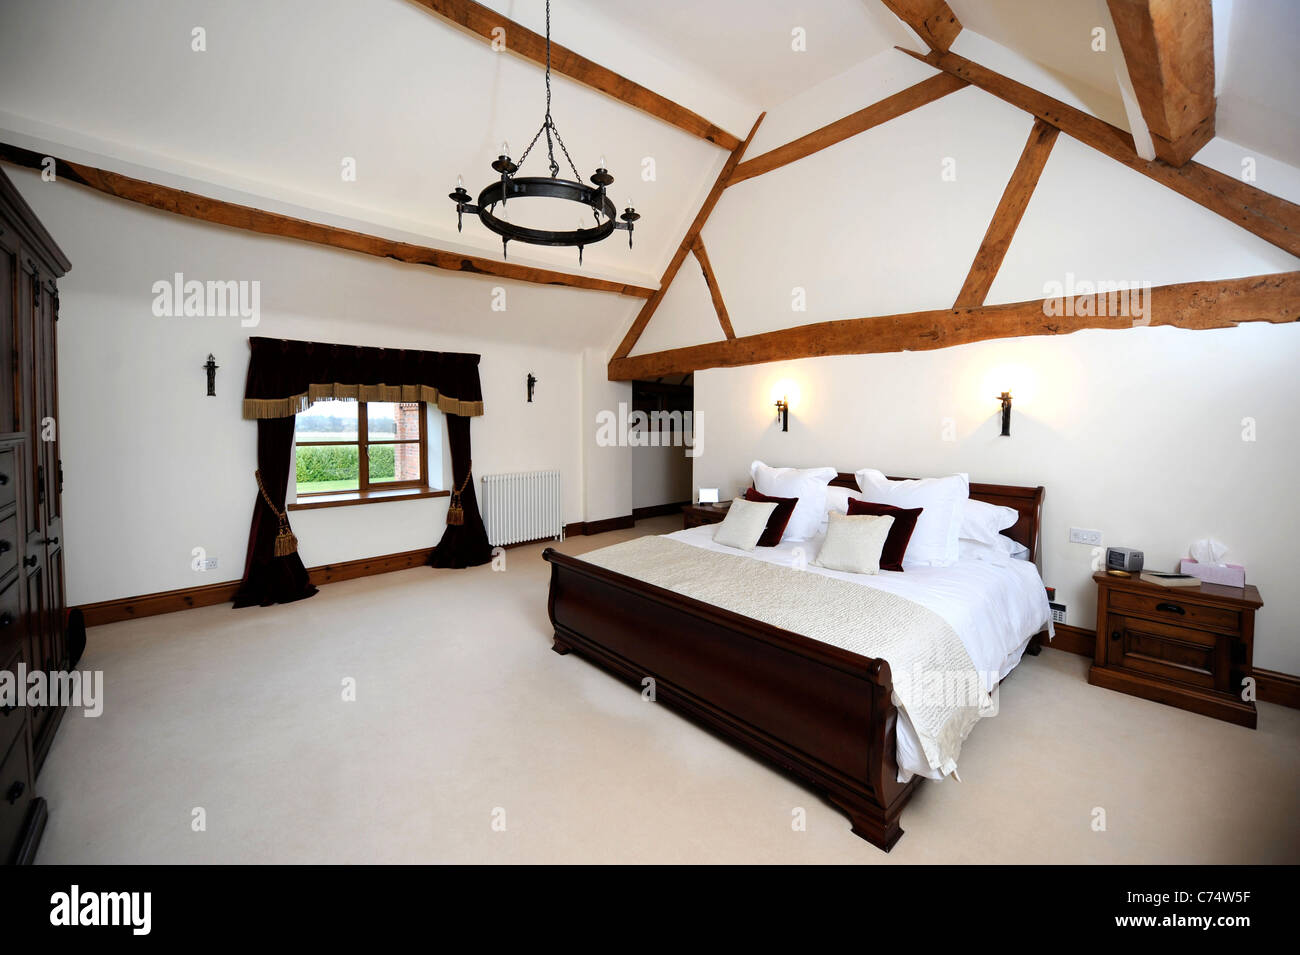 Master bedroom with a vaulted ceiling in a converted barn ...